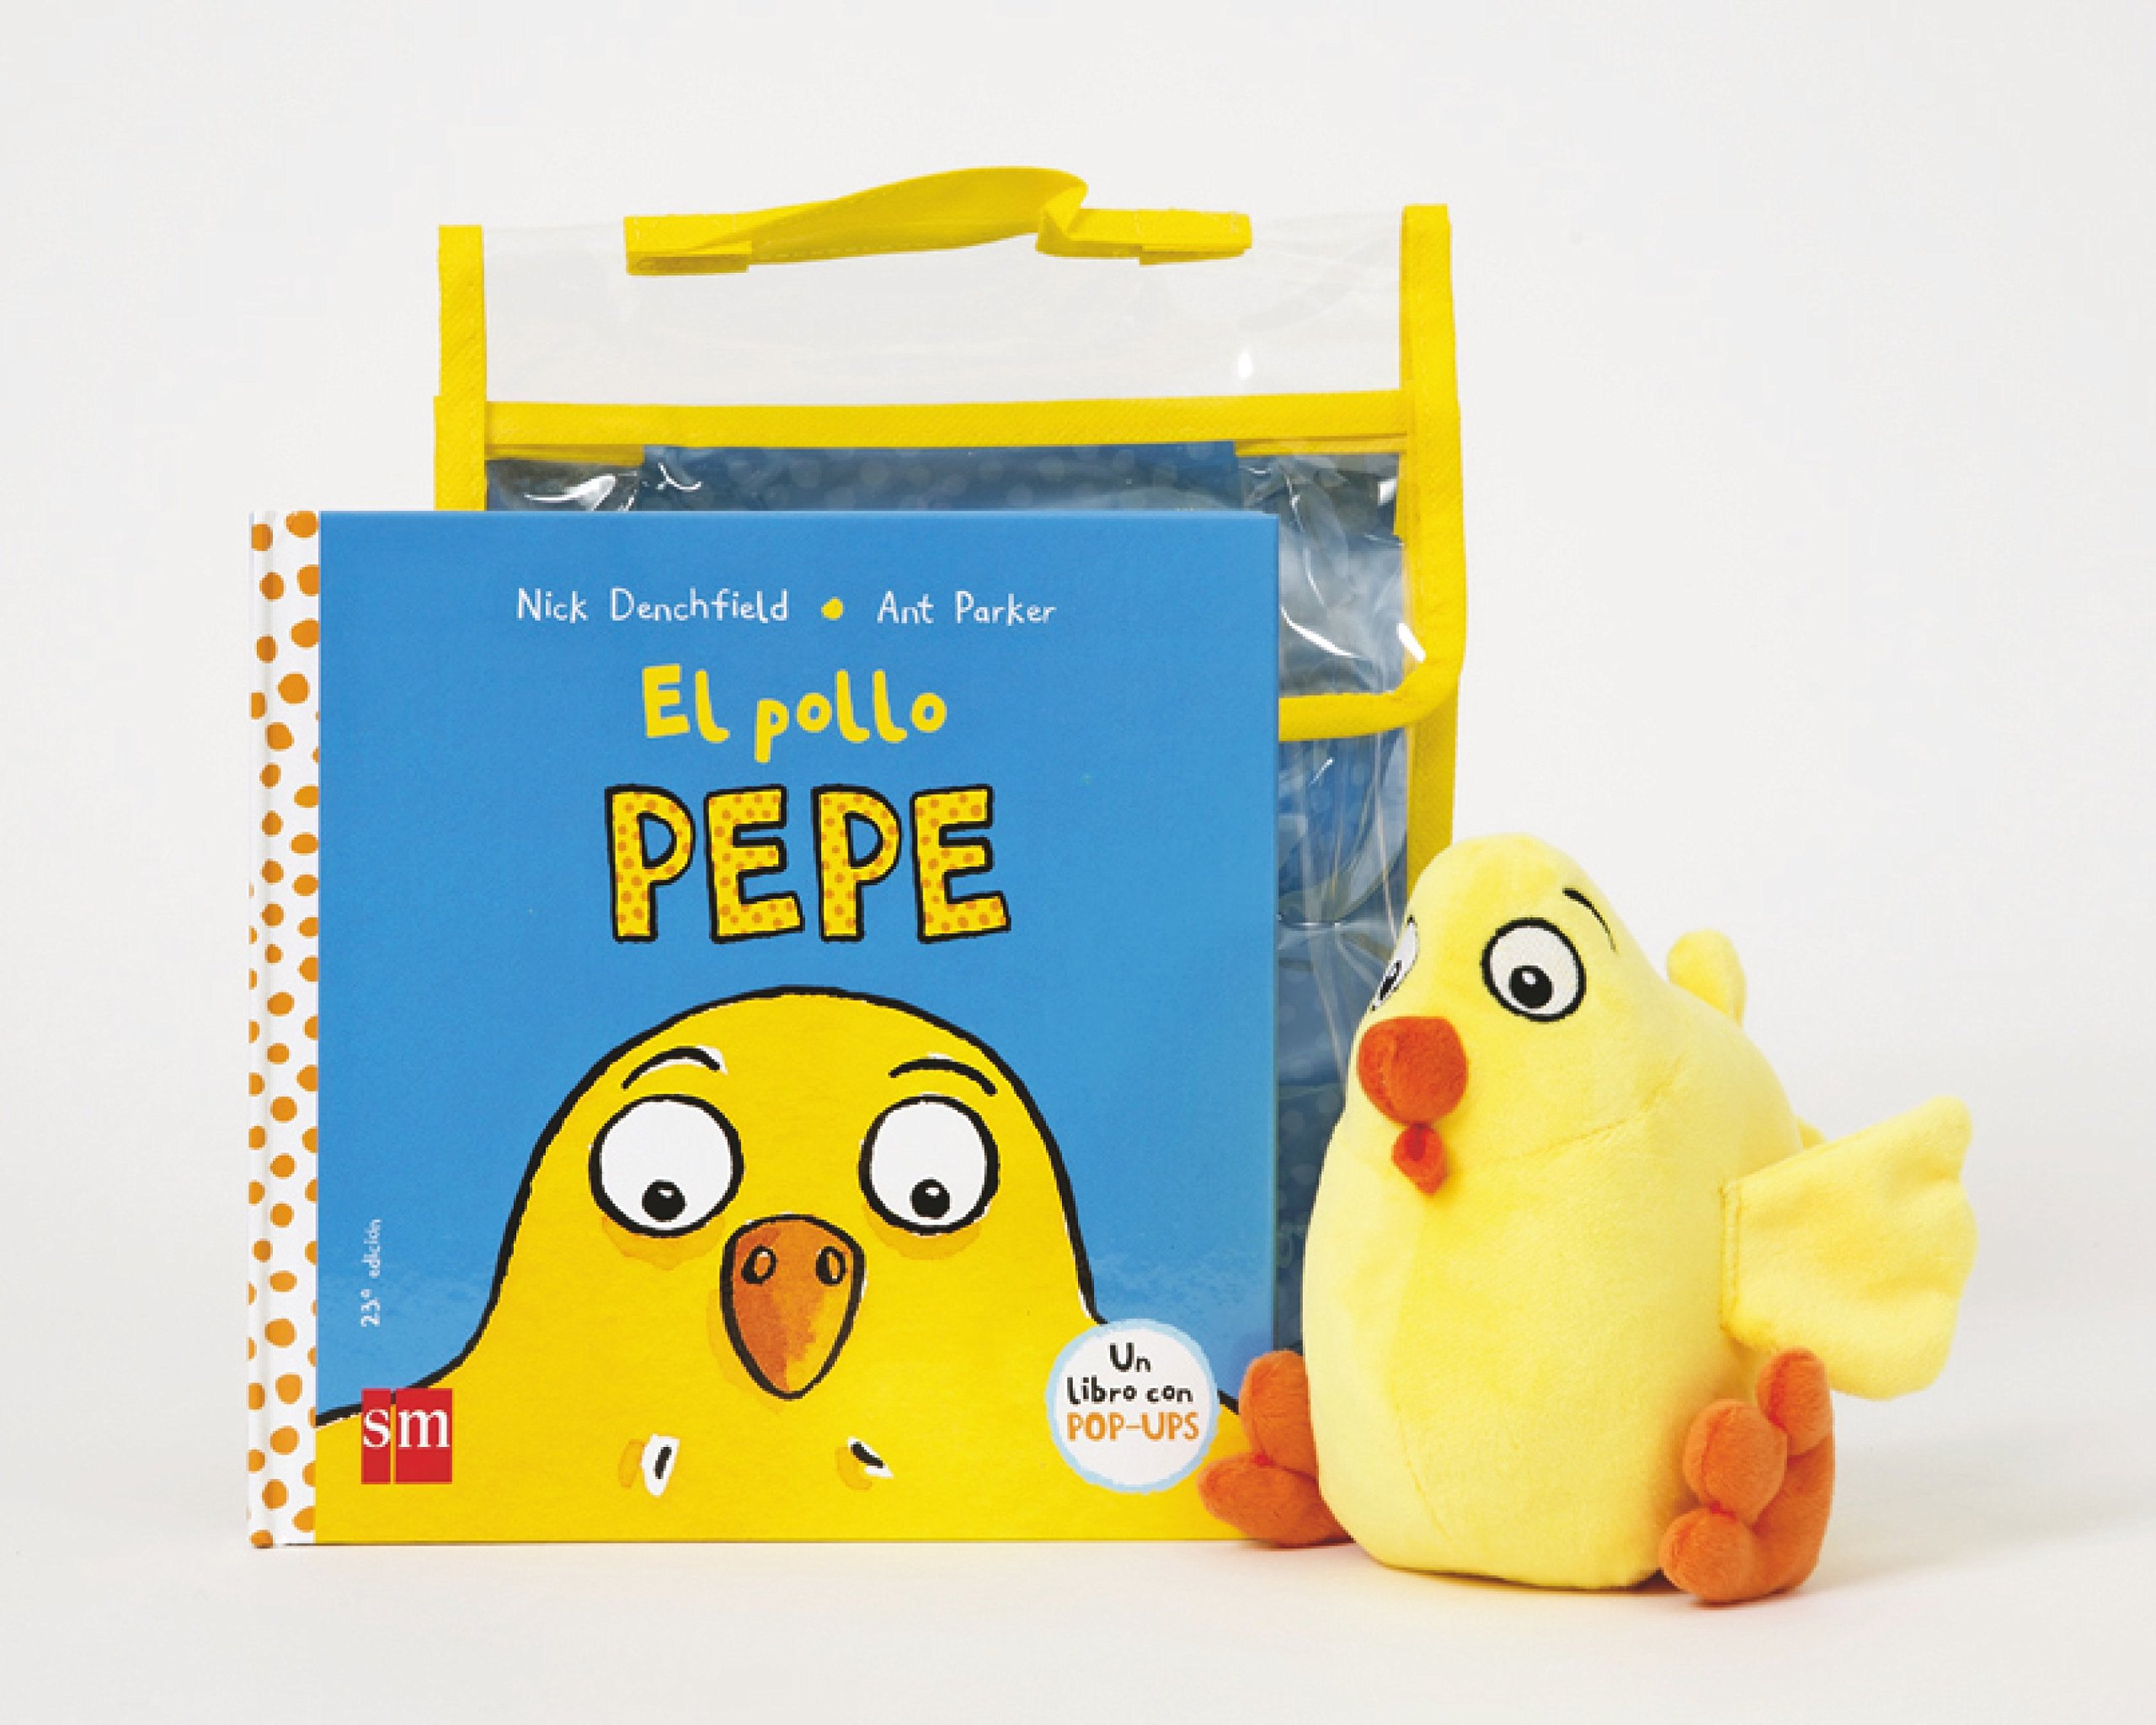 El Pollo Pepe + muñeco (Spanish Edition): Nick Denchfield, Ant Parker: 9788467559163: Amazon.com: Books